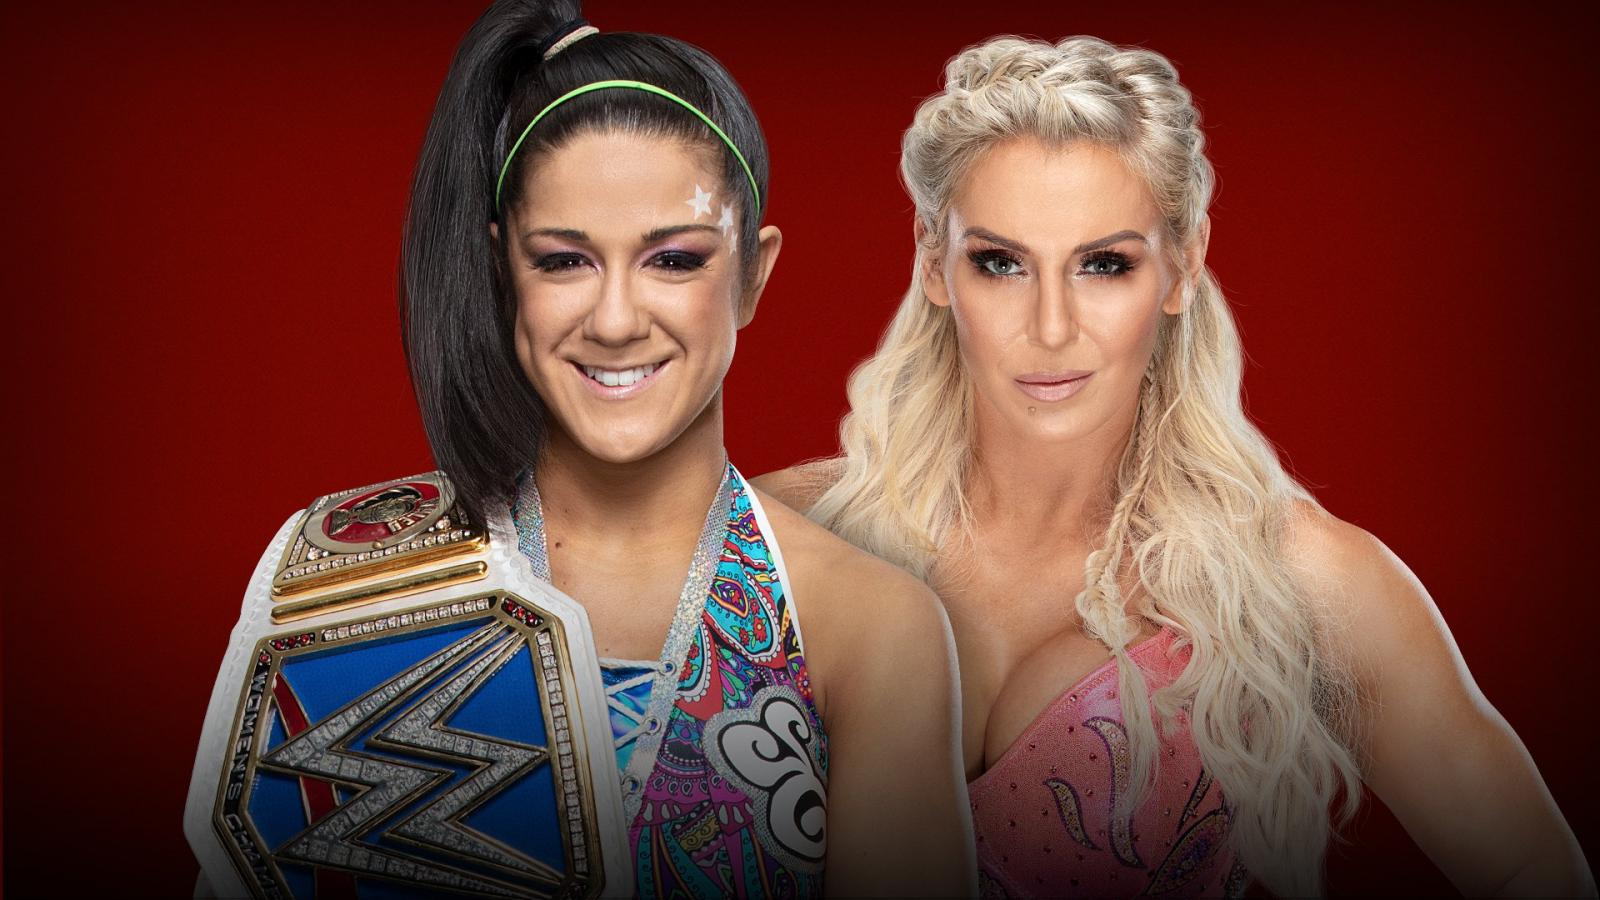 Bayley Charlotte Flair